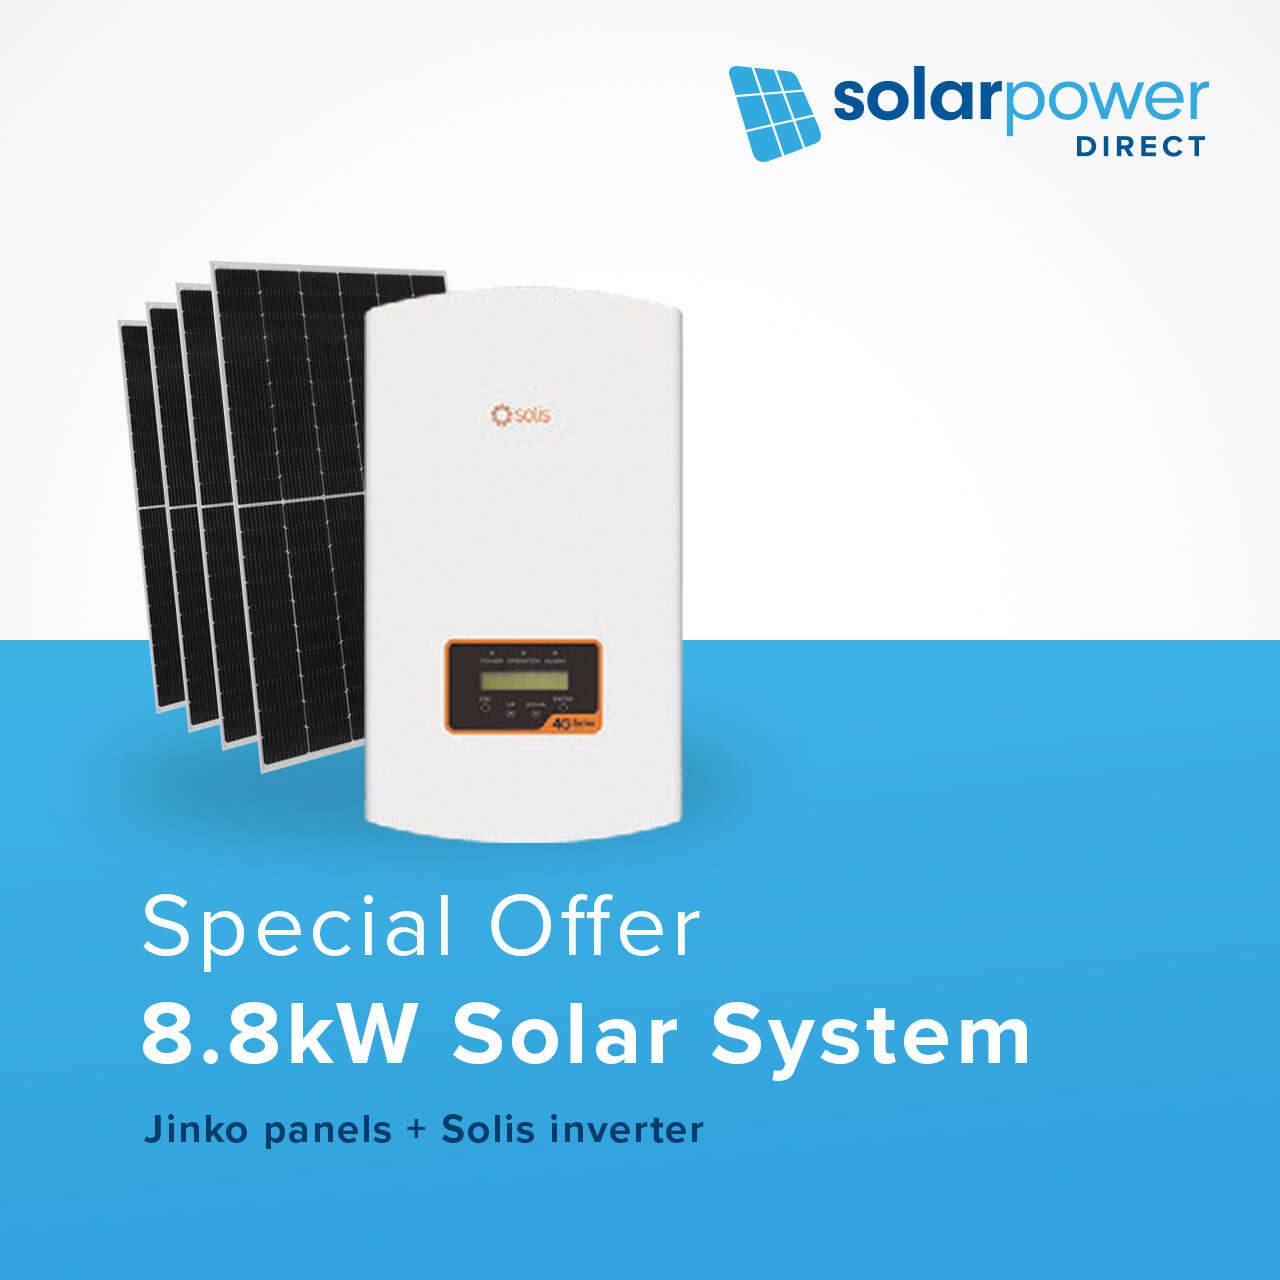 8.8kW Solar System for $17 per week